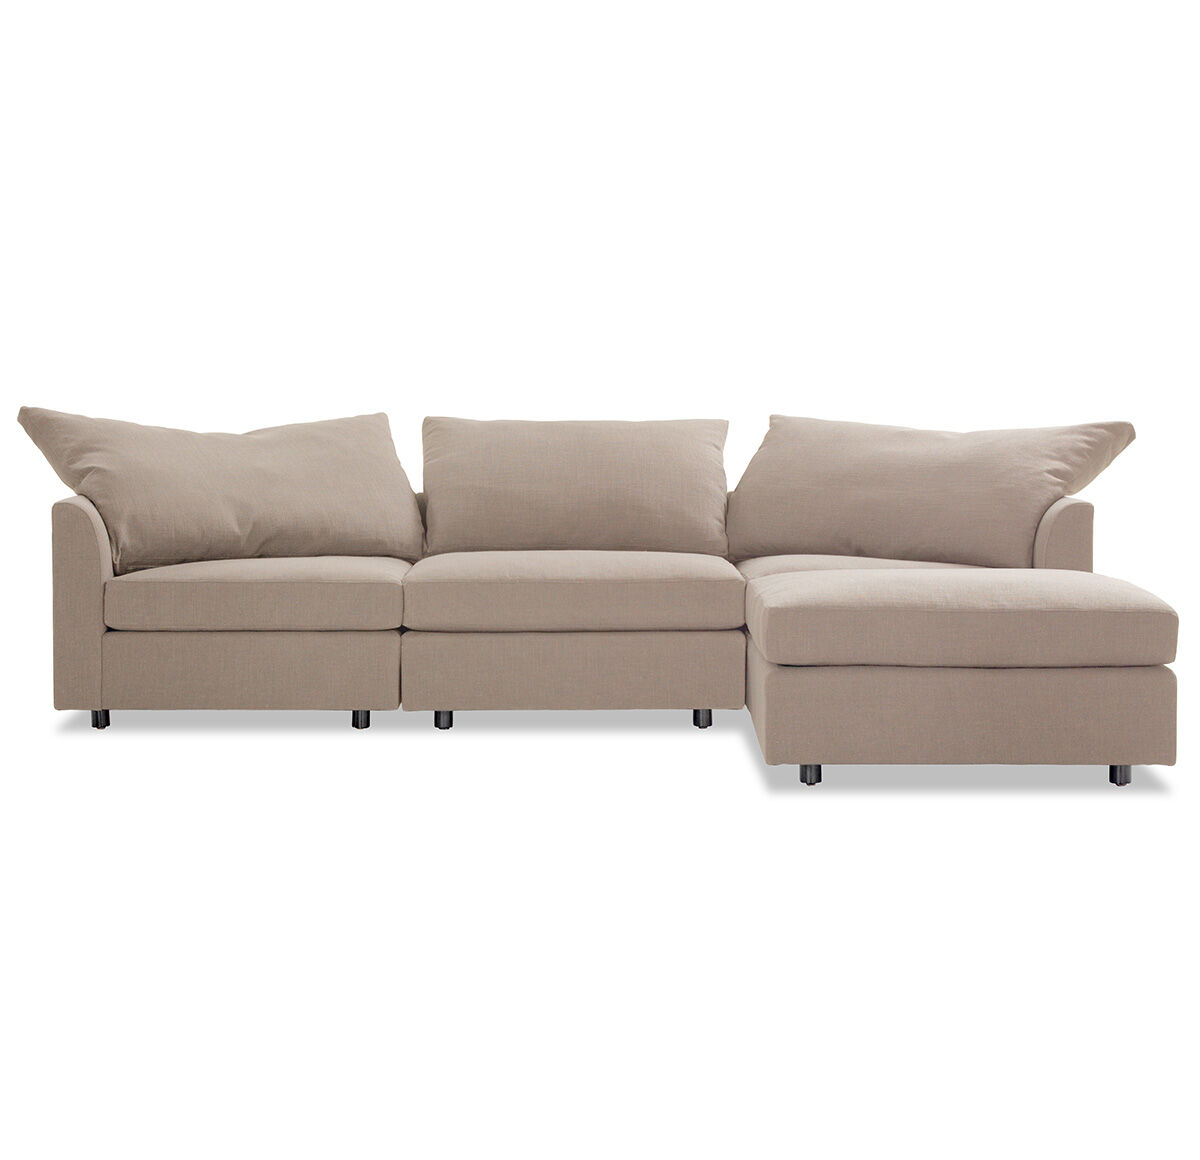 alex ii 89 sofa slipcover two piece sectional with chaise mgbw | brokeasshome.com